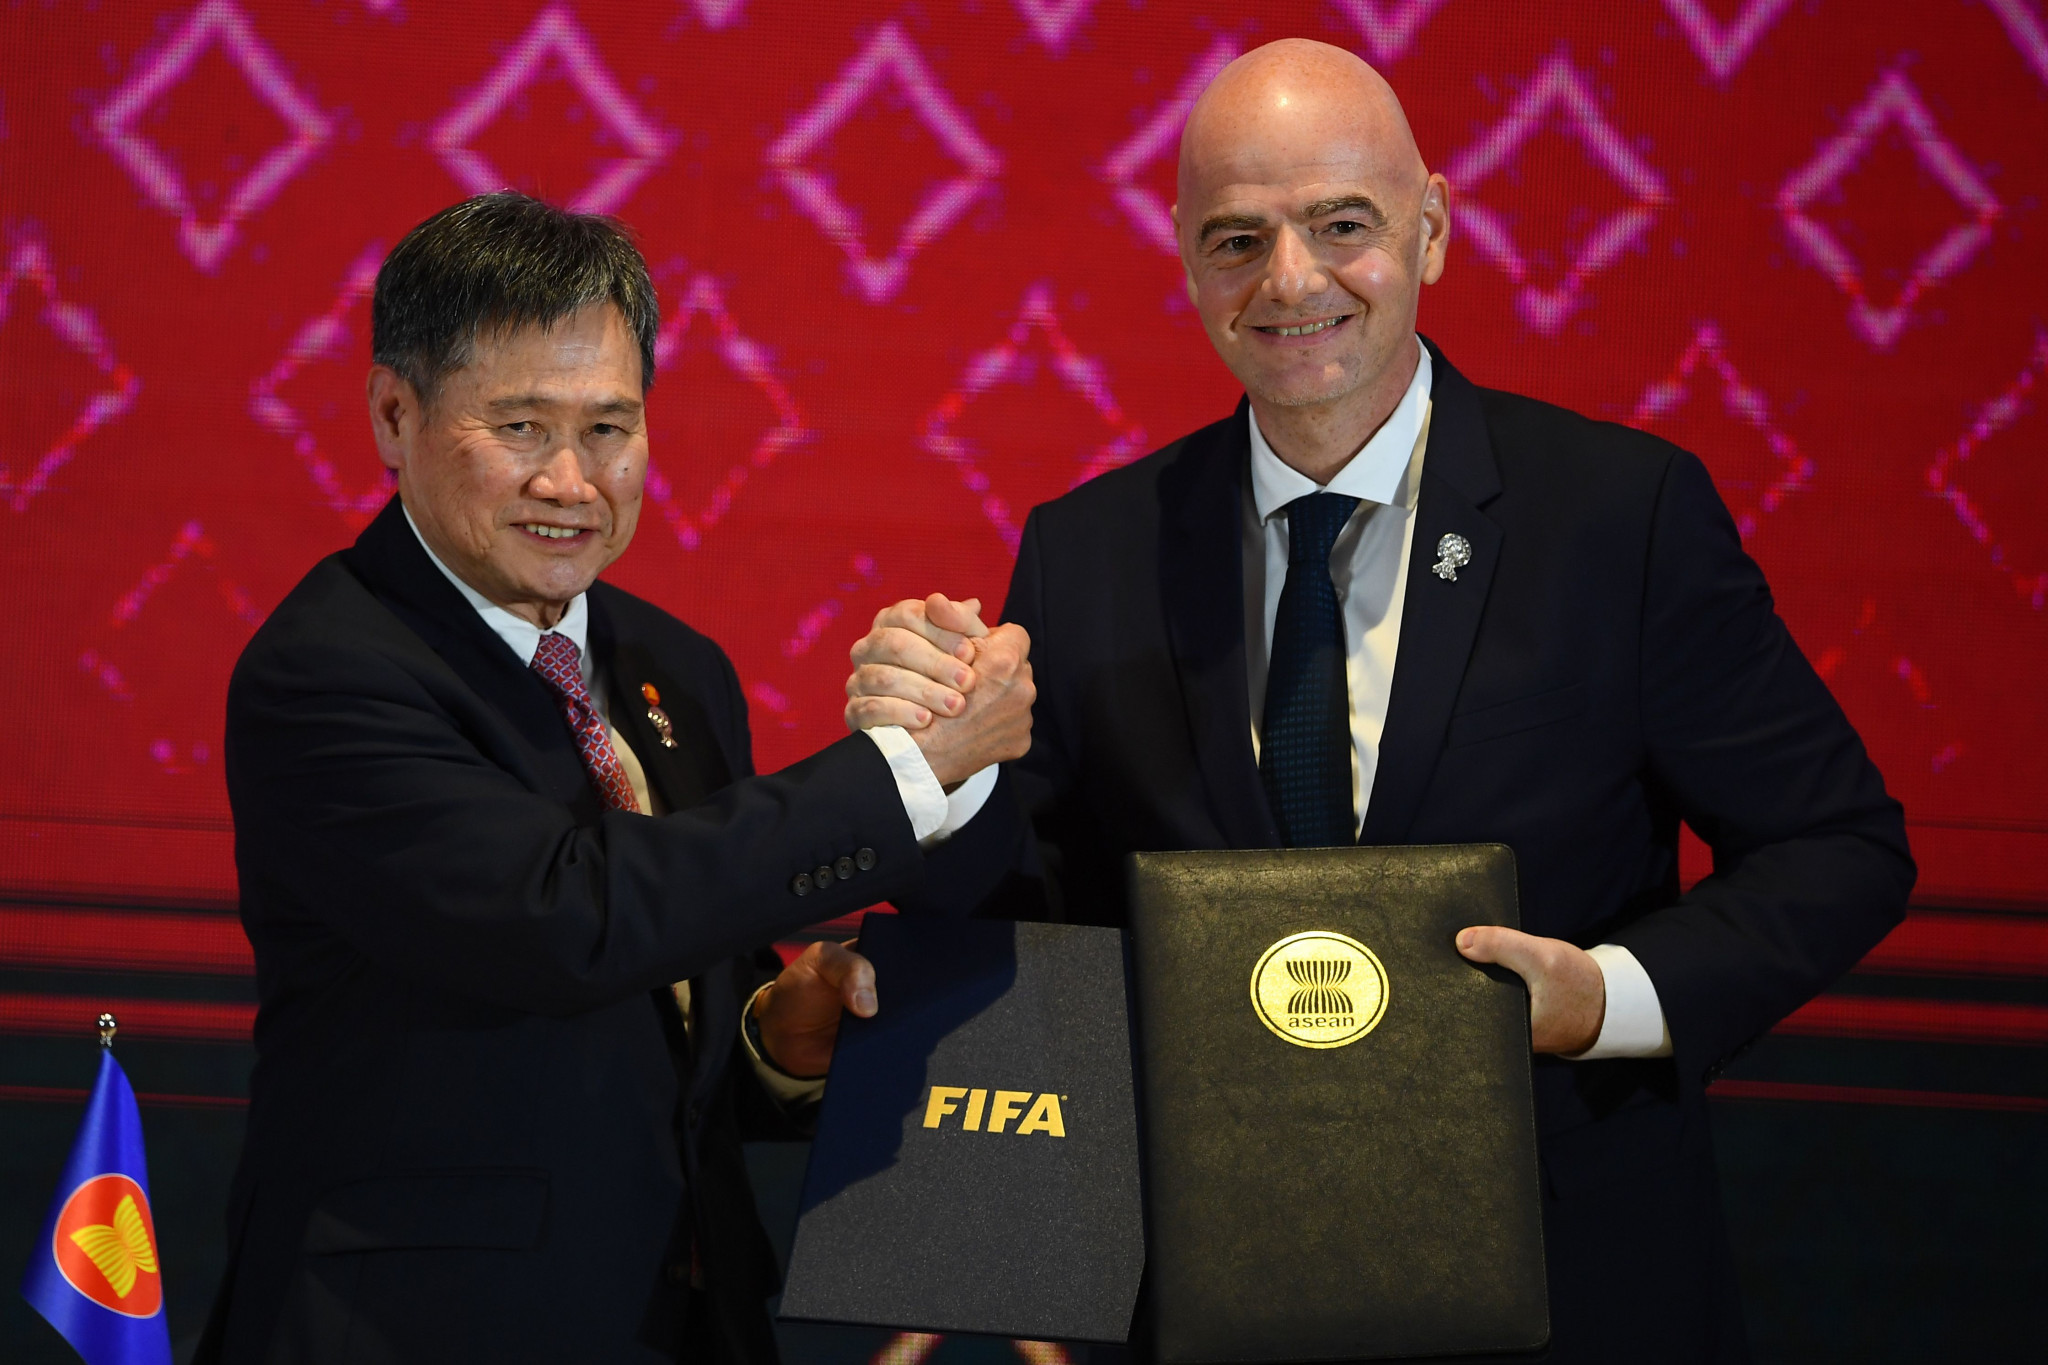 FIFA and ASEAN sign collaboration agreement